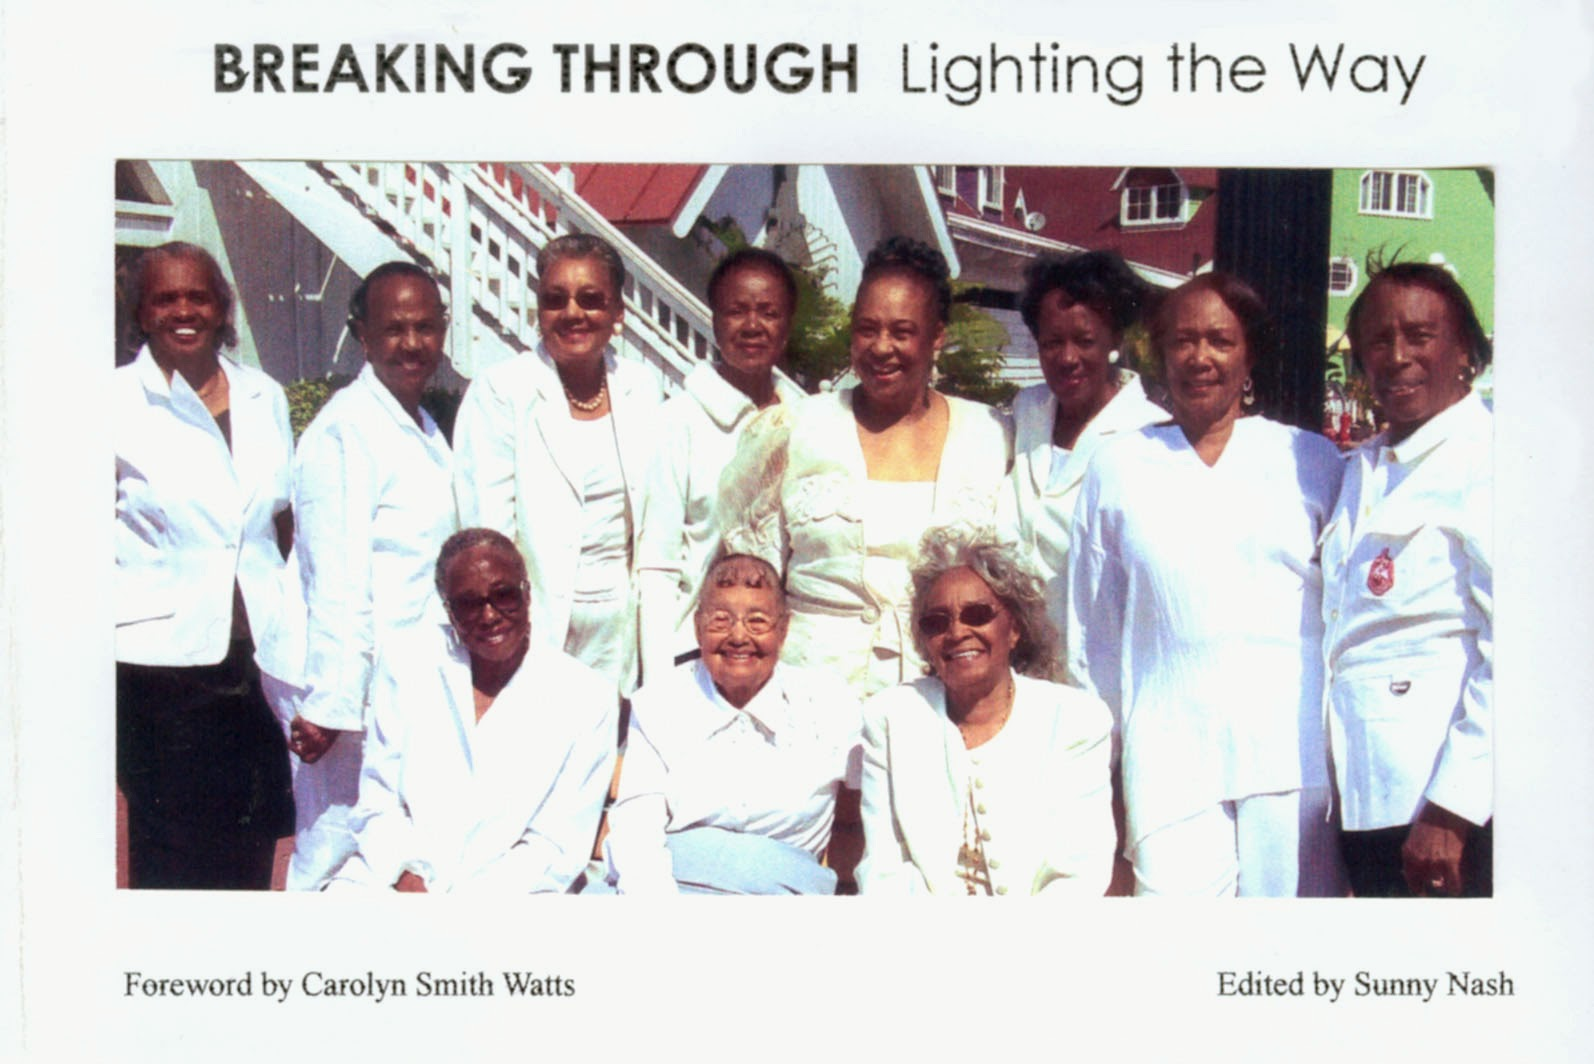 BREAKING THROUGH Lighting the Way  (l-r, rear) Evelyn Knight, Patricia Lofland Bobbie Smith, Alta Cooke, Carrie Bryant Vera Mulkey, Wilma Powell, Doris Topsy-Elvord (seated l-r) Autrilla Scott, Maycie Herrington Dale Clinton & Lillie Mae Wesley (not present)